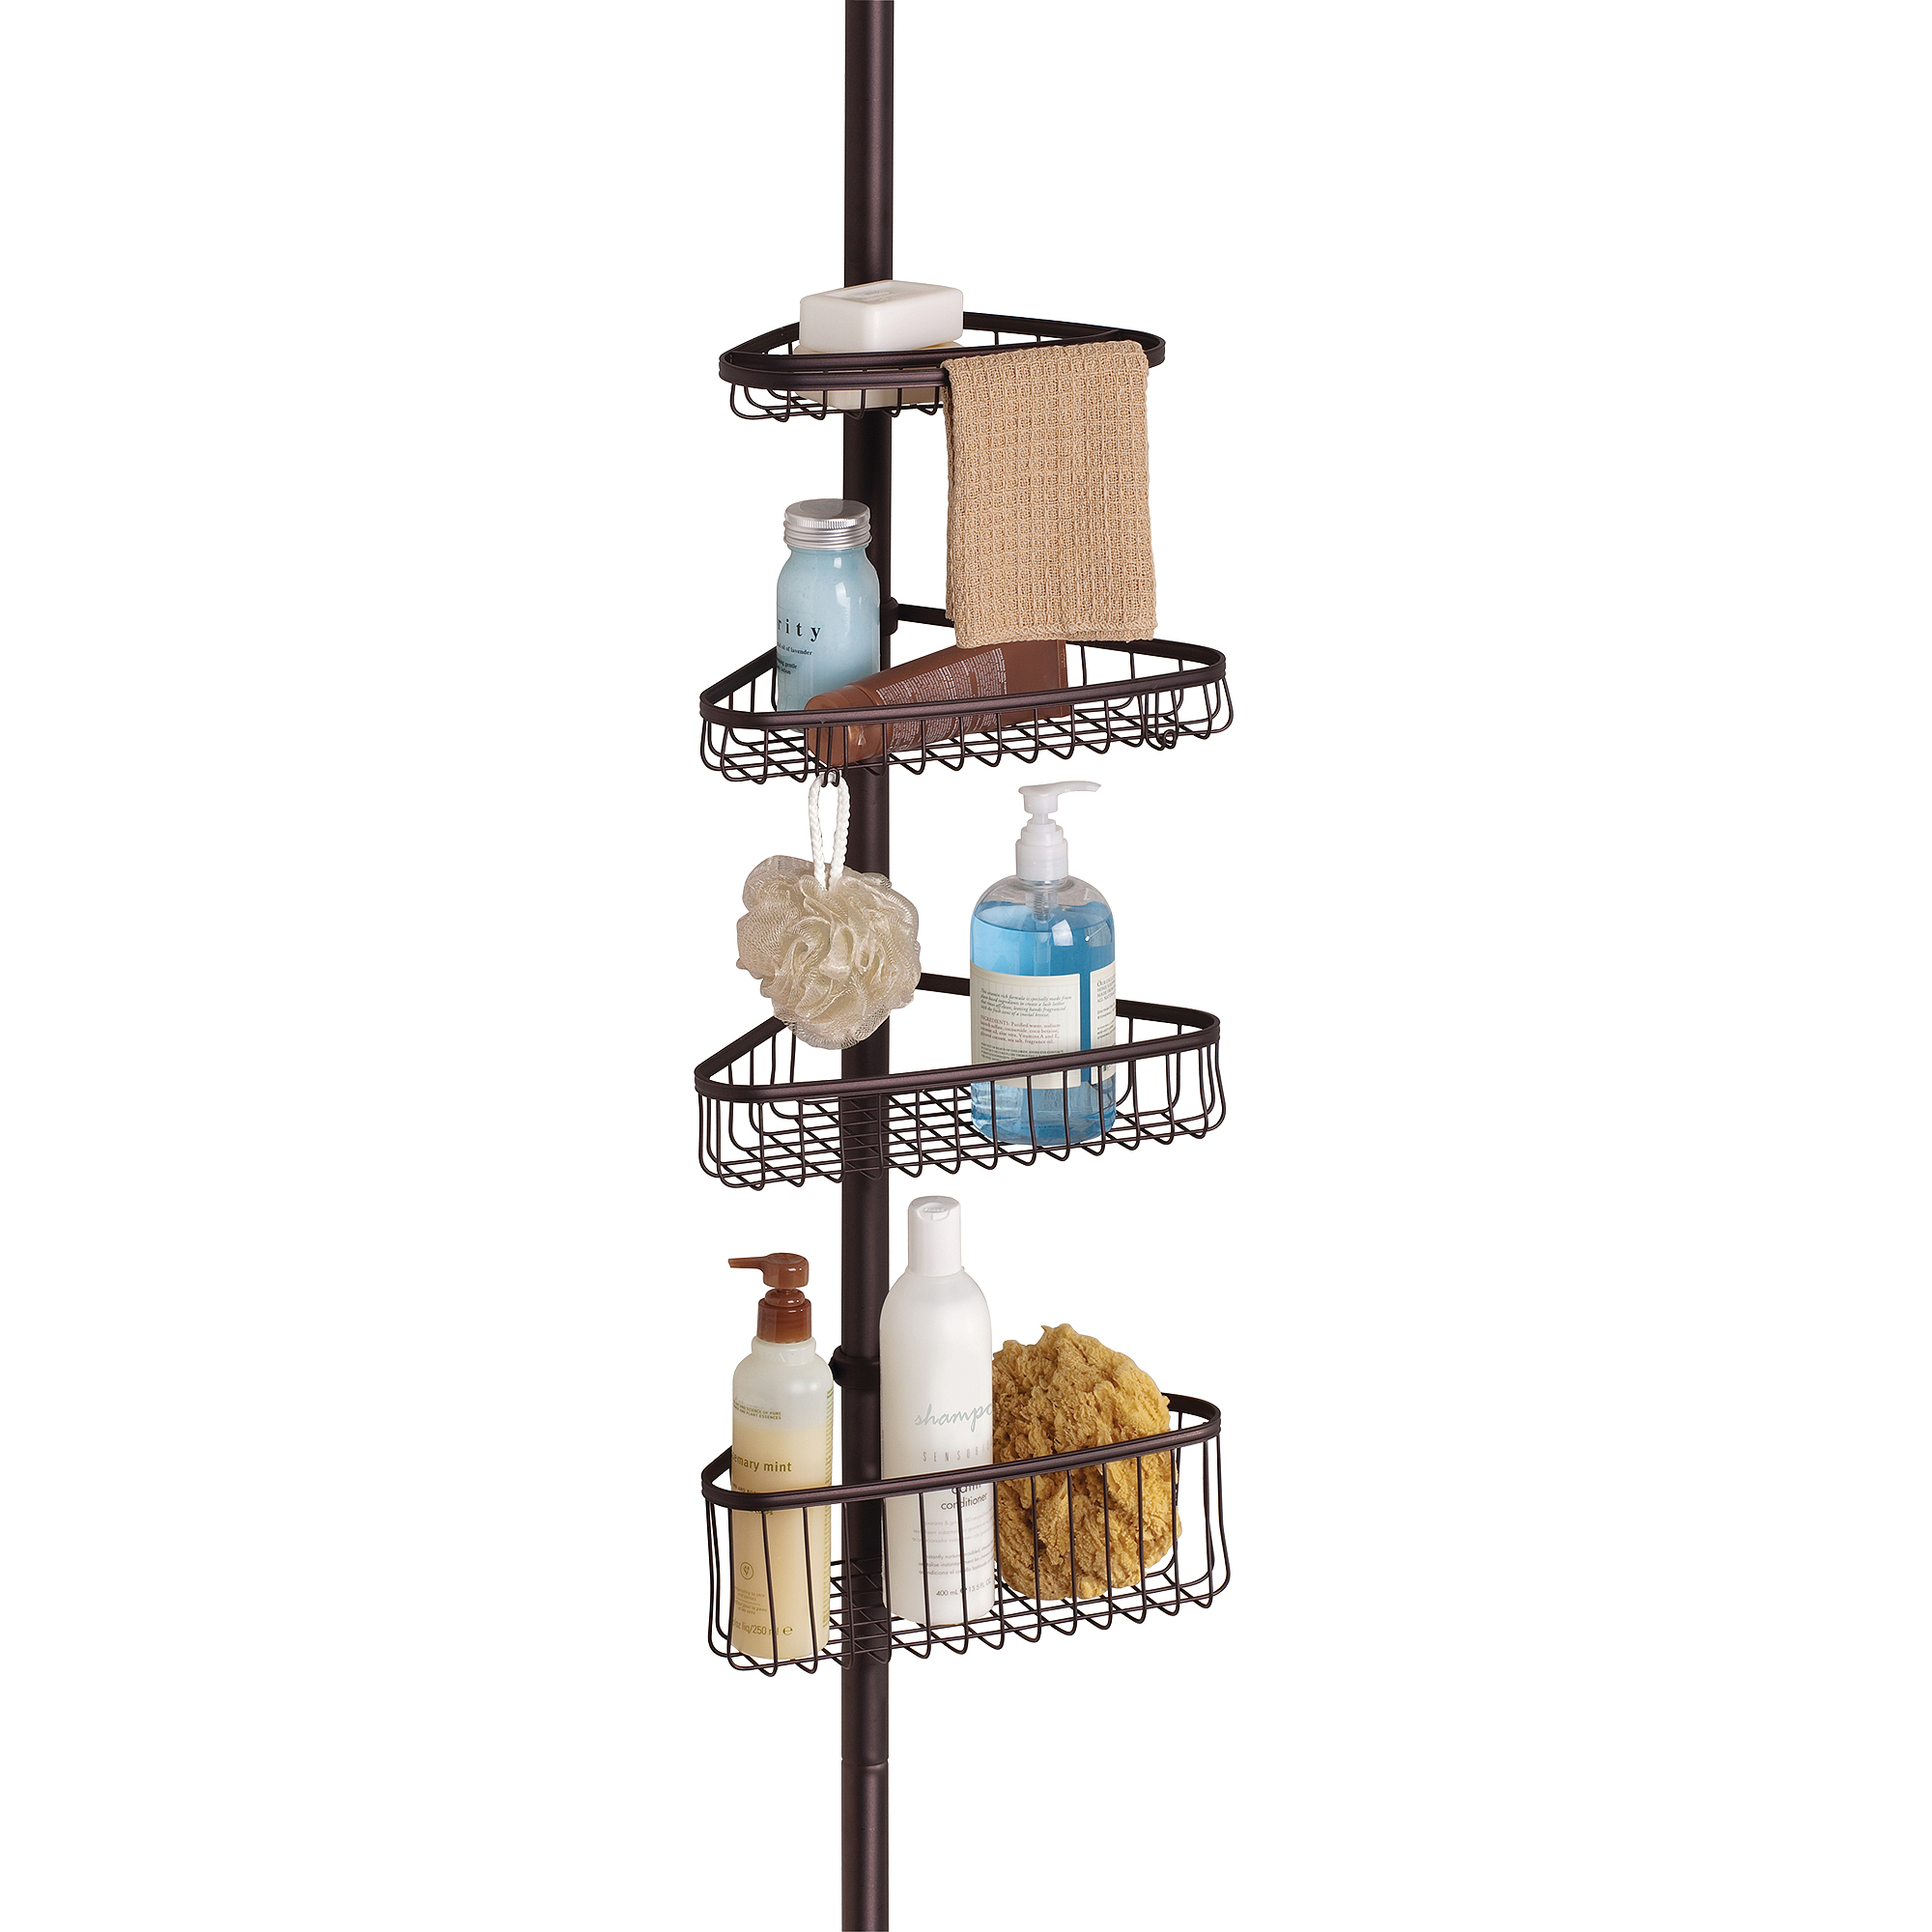 . InterDesign York Tension Shower Caddy 2   Walmart com